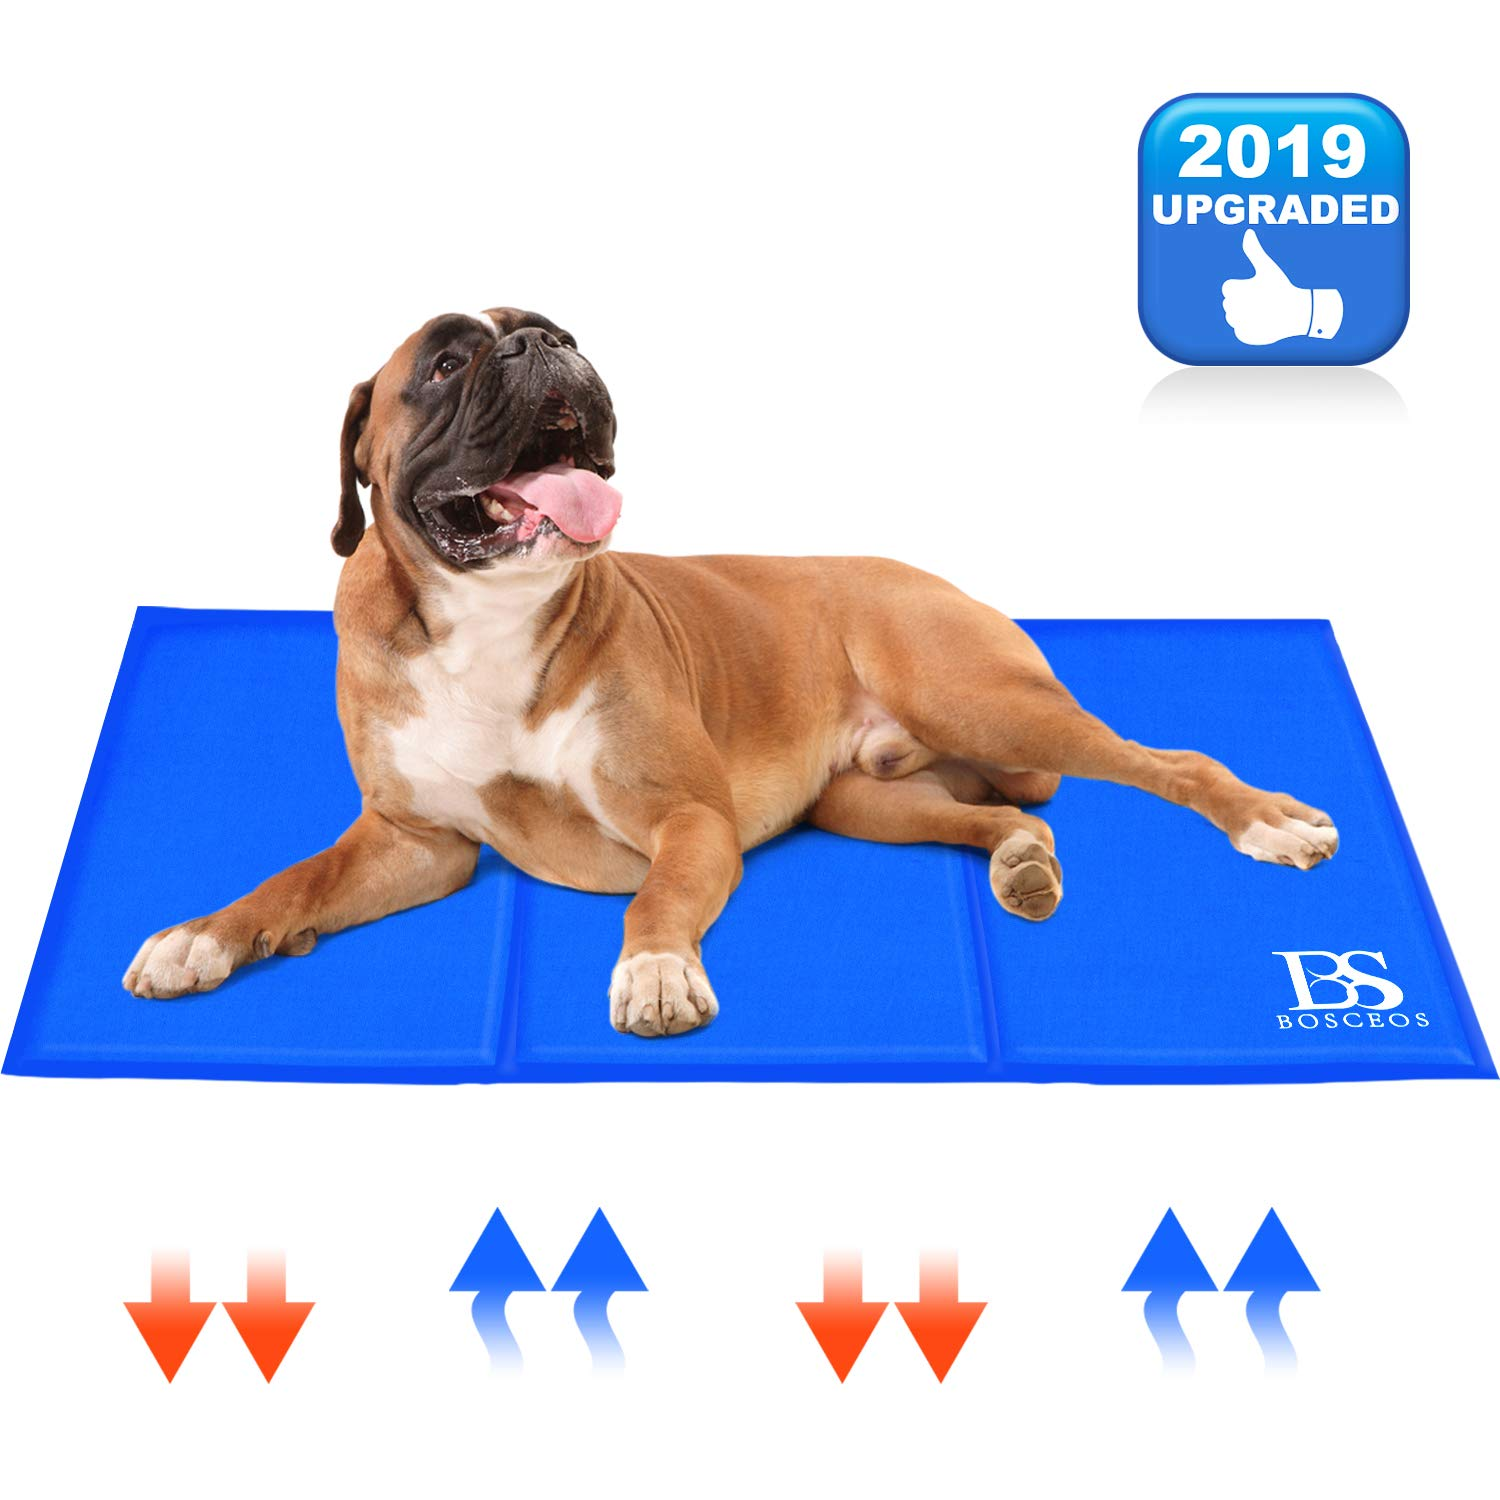 Upgraded Large Dog Cooling Mat Waterproof Scratchproof Activated Gel Cooling Pad For Dogs Non Toxic Great Dog Accessories To Help Your Pet Stay